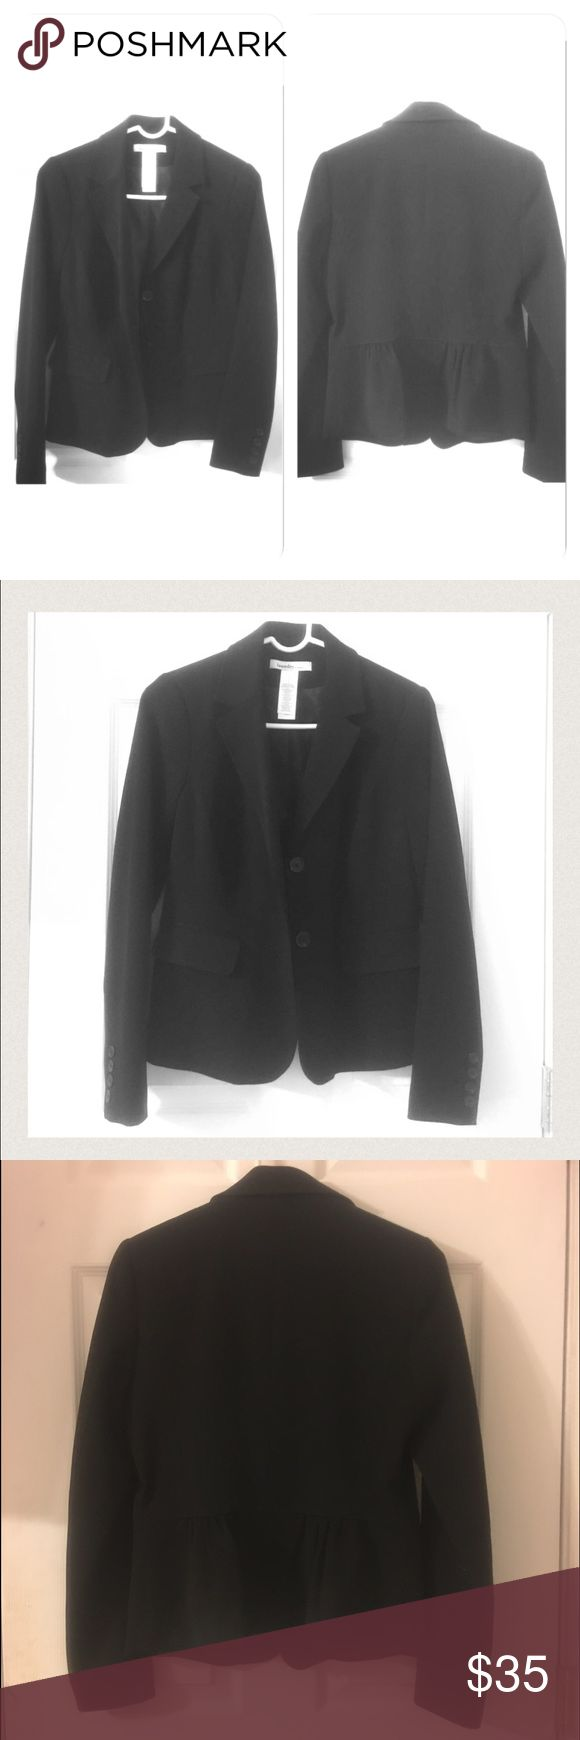 Cute & unique Black Suit Jacket size 6 worn once! Really nice women's suit jacket size 6. Worn once for an interview! The back is very cute and unique ruffled slightly. Jackets & Coats Blazers